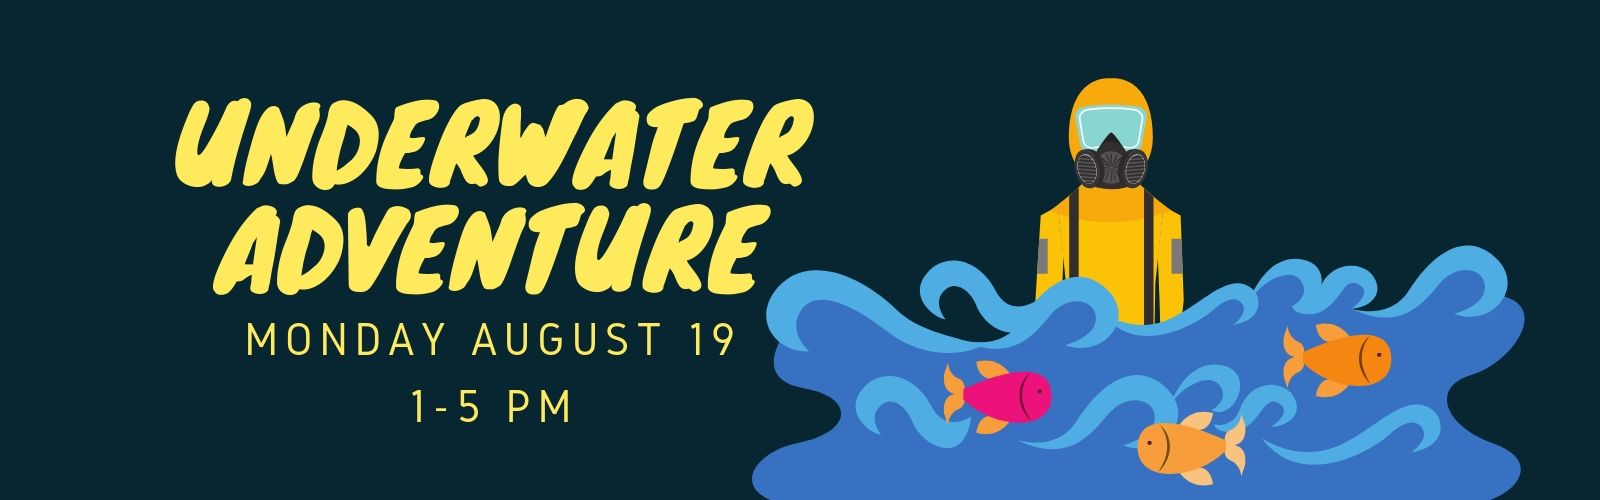 Underwater Adventure, Monday August 19th from 1 to 5 pm